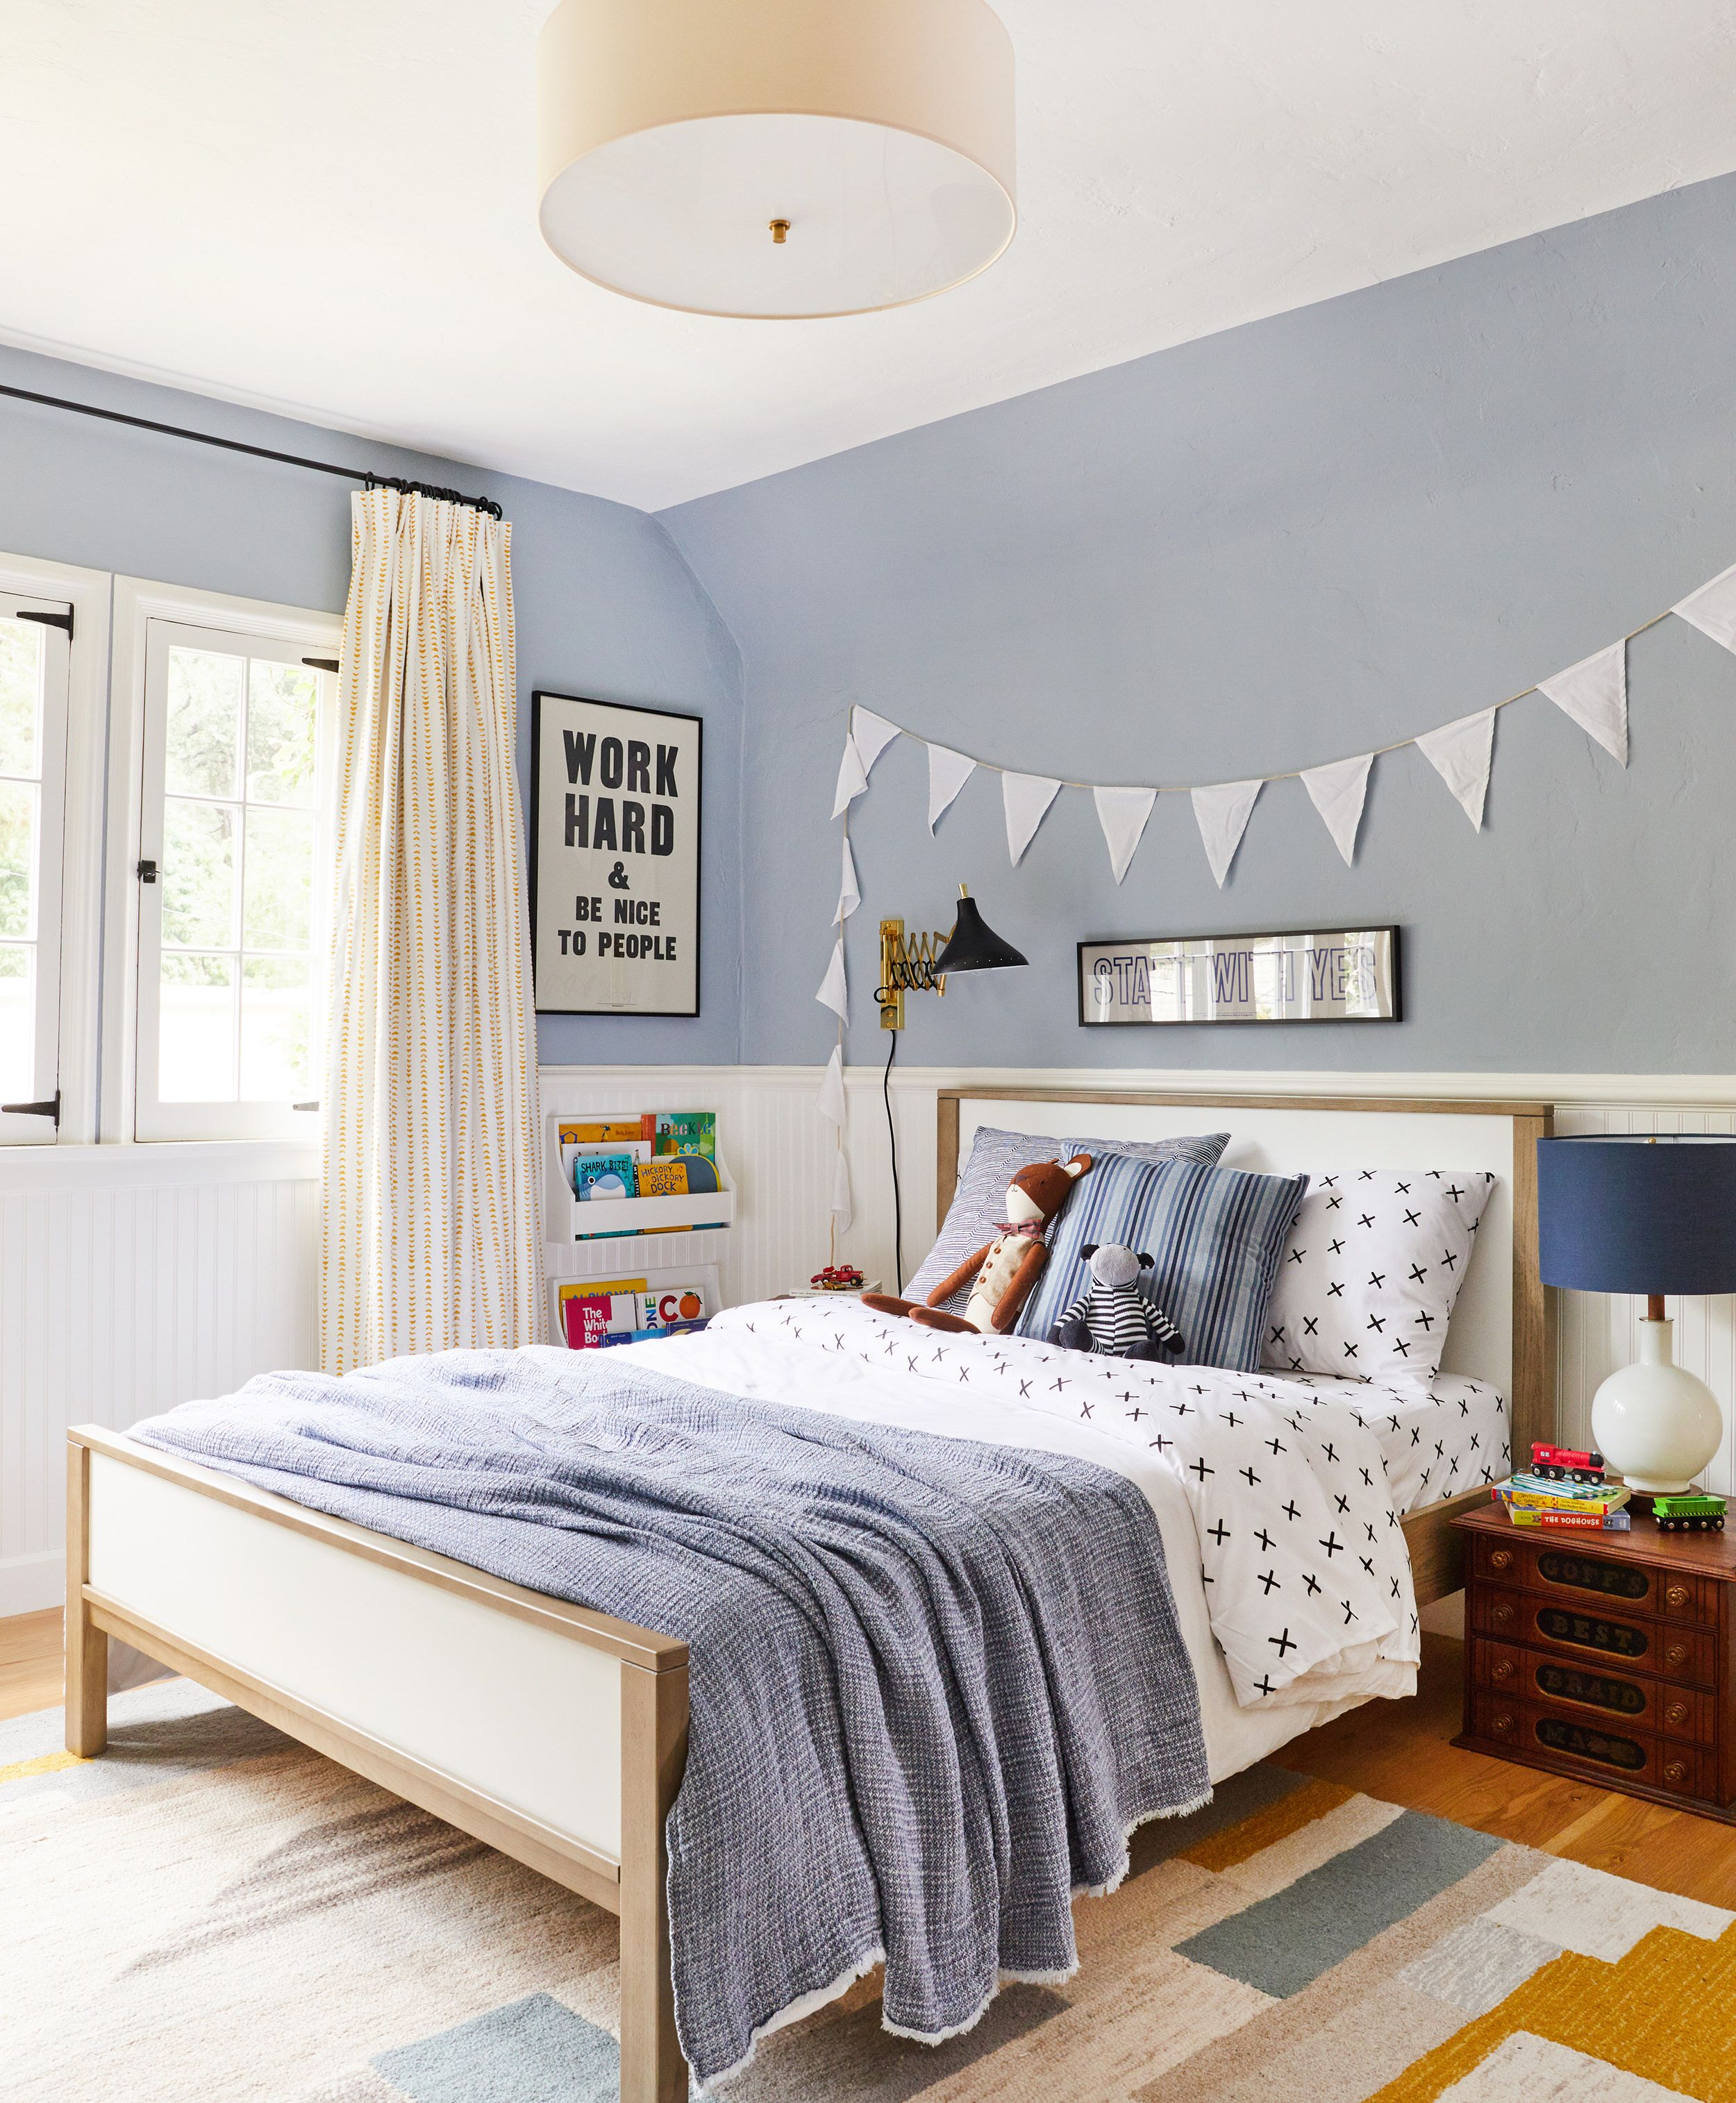 Our Kids Now Share a Room ...With Layout Challenges and a New Gender-Neutral Theme images